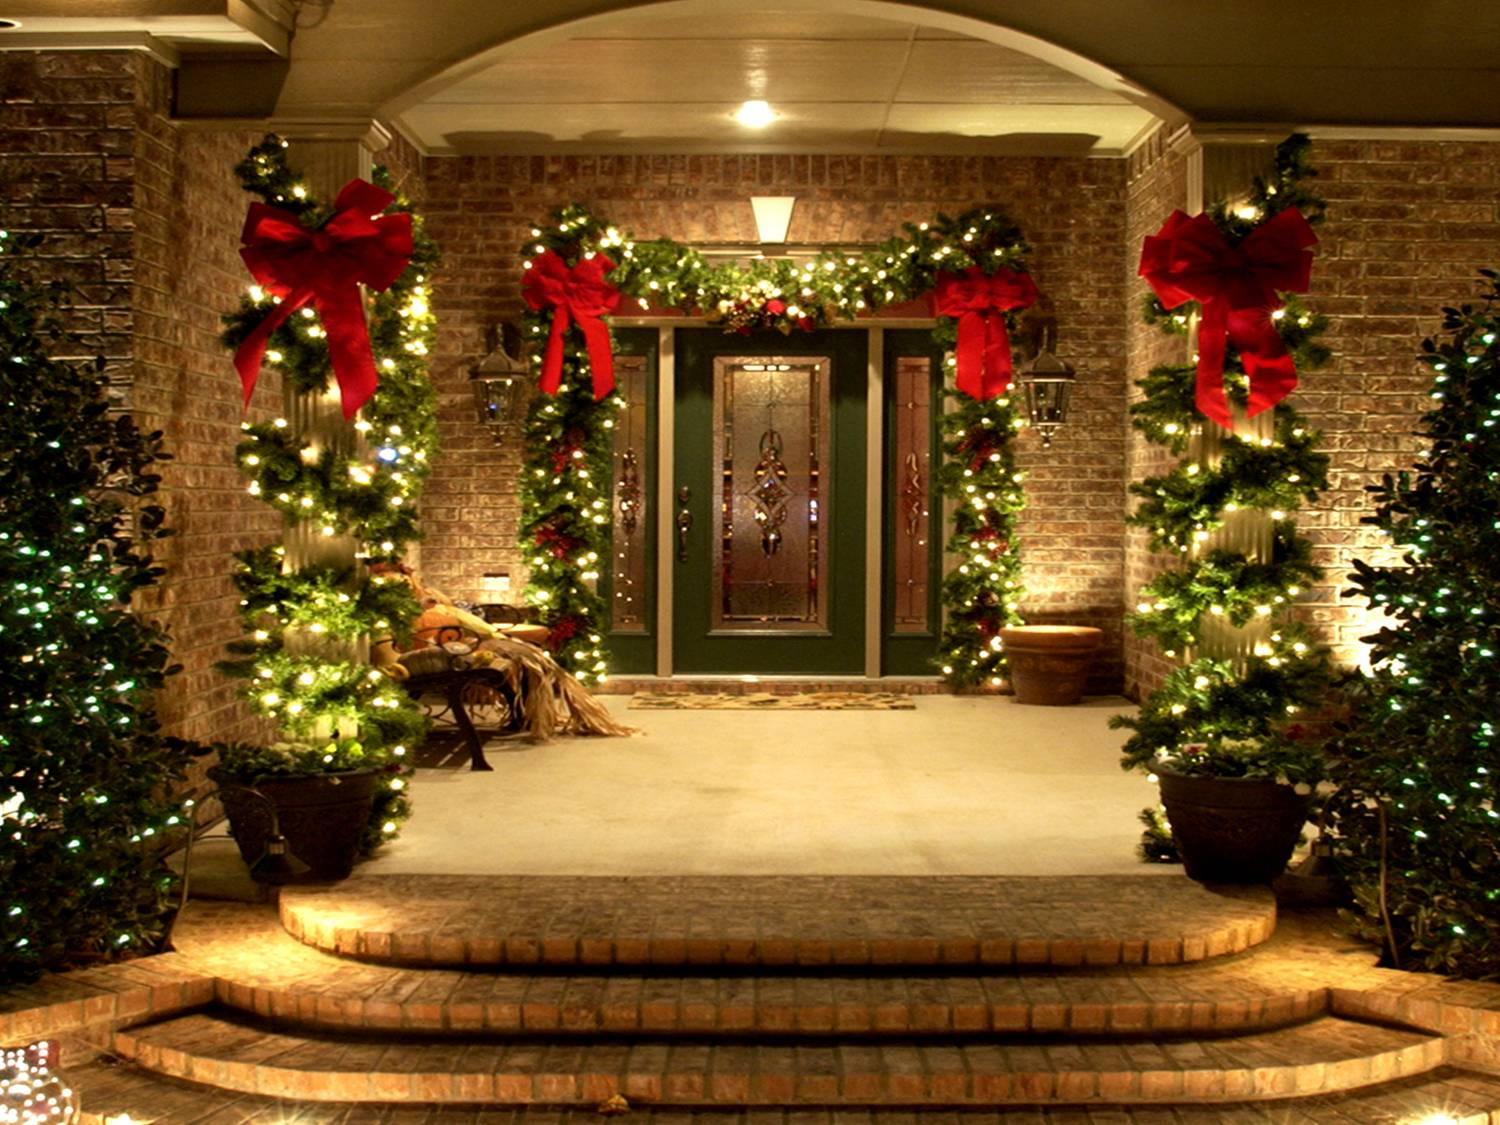 Colorado homes and commercial properties become Holiday decorated homes